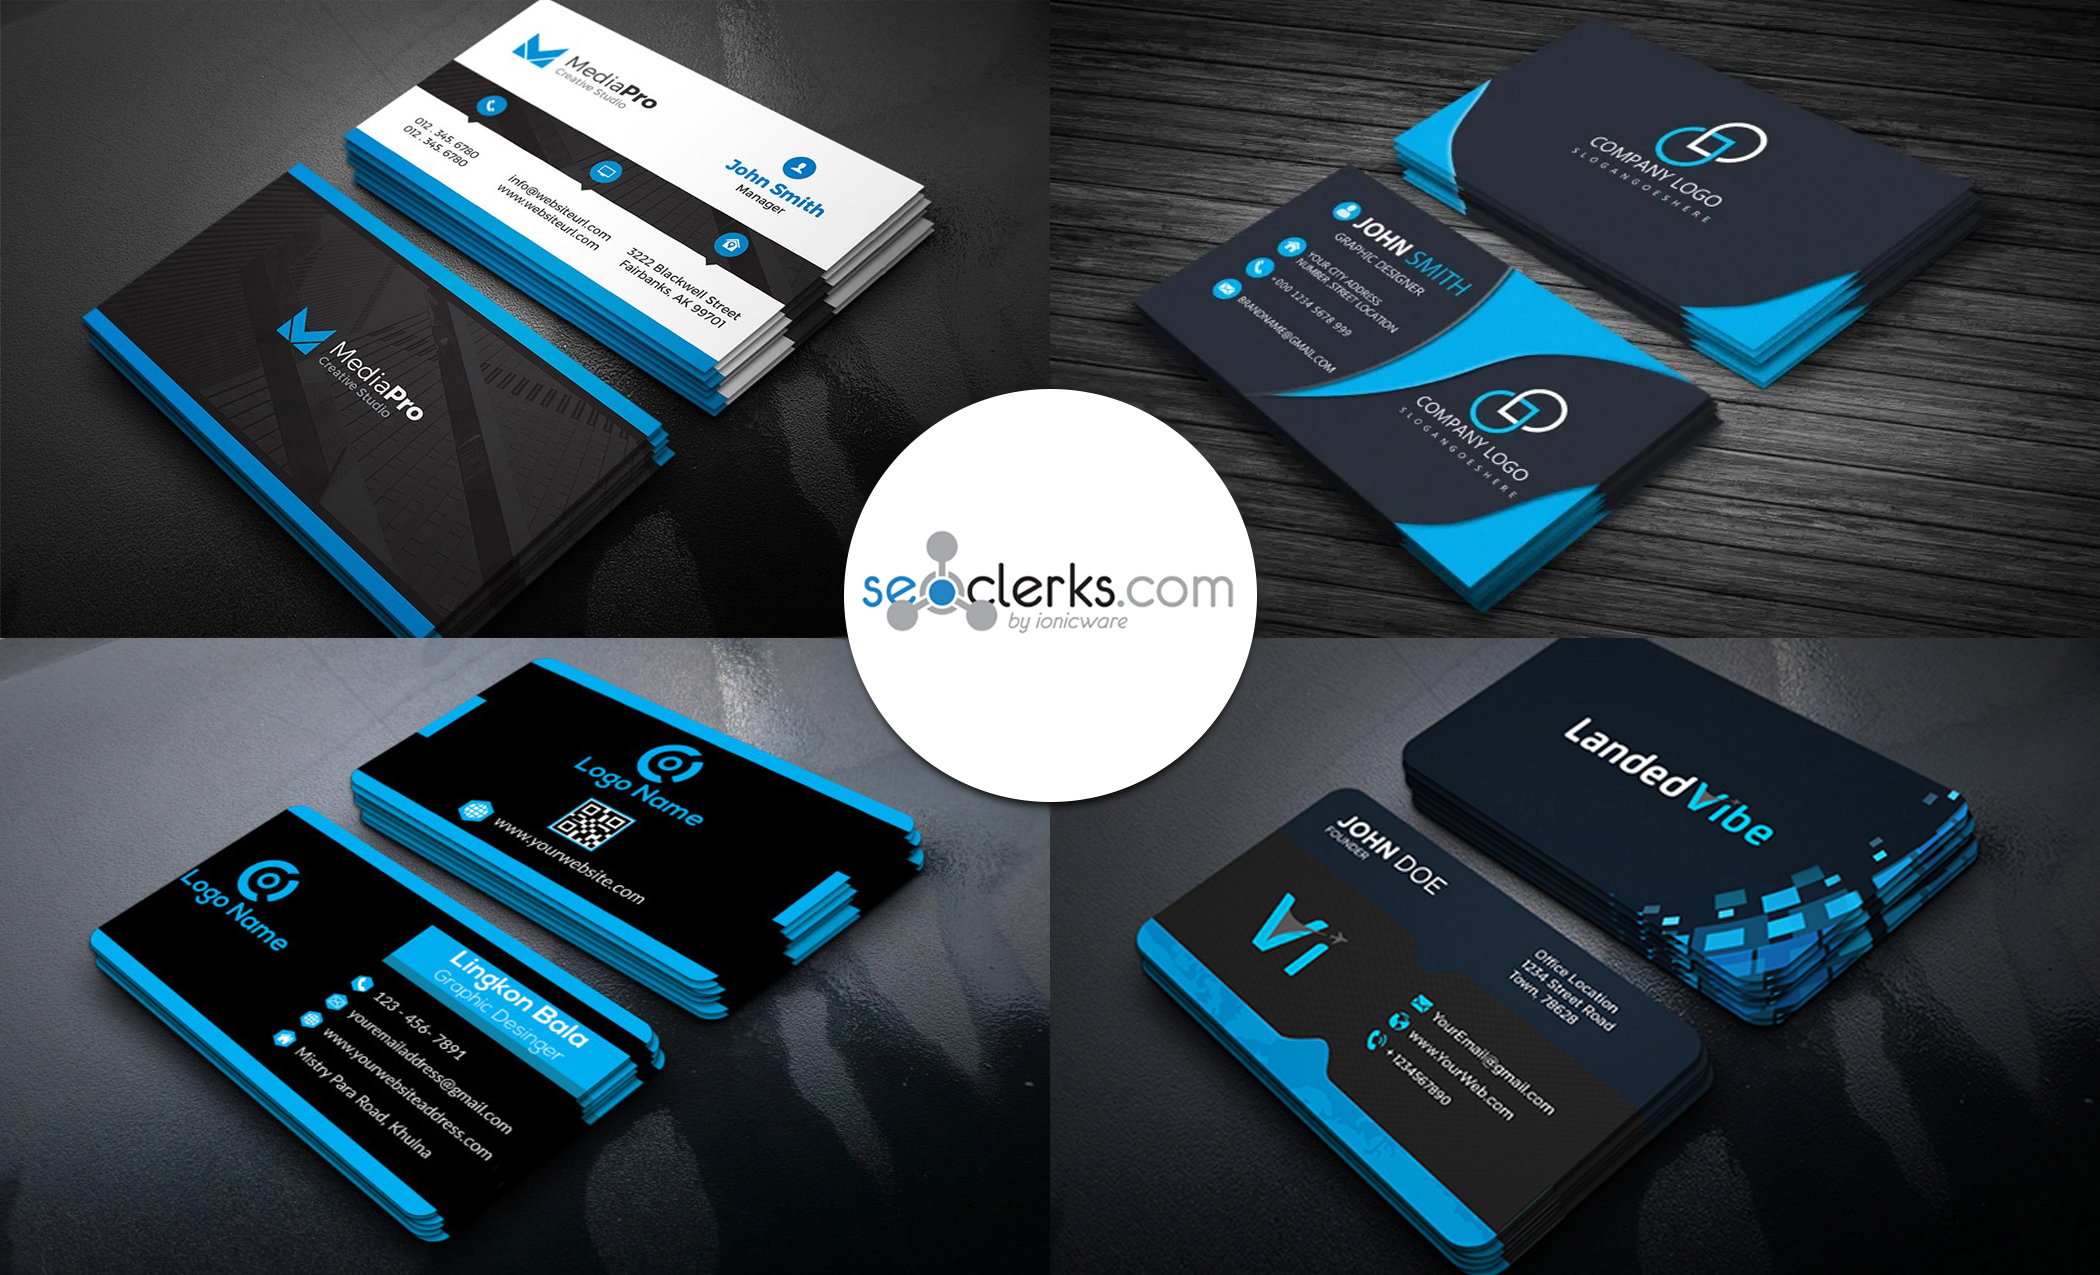 I will design professional modern minimal business card and logo